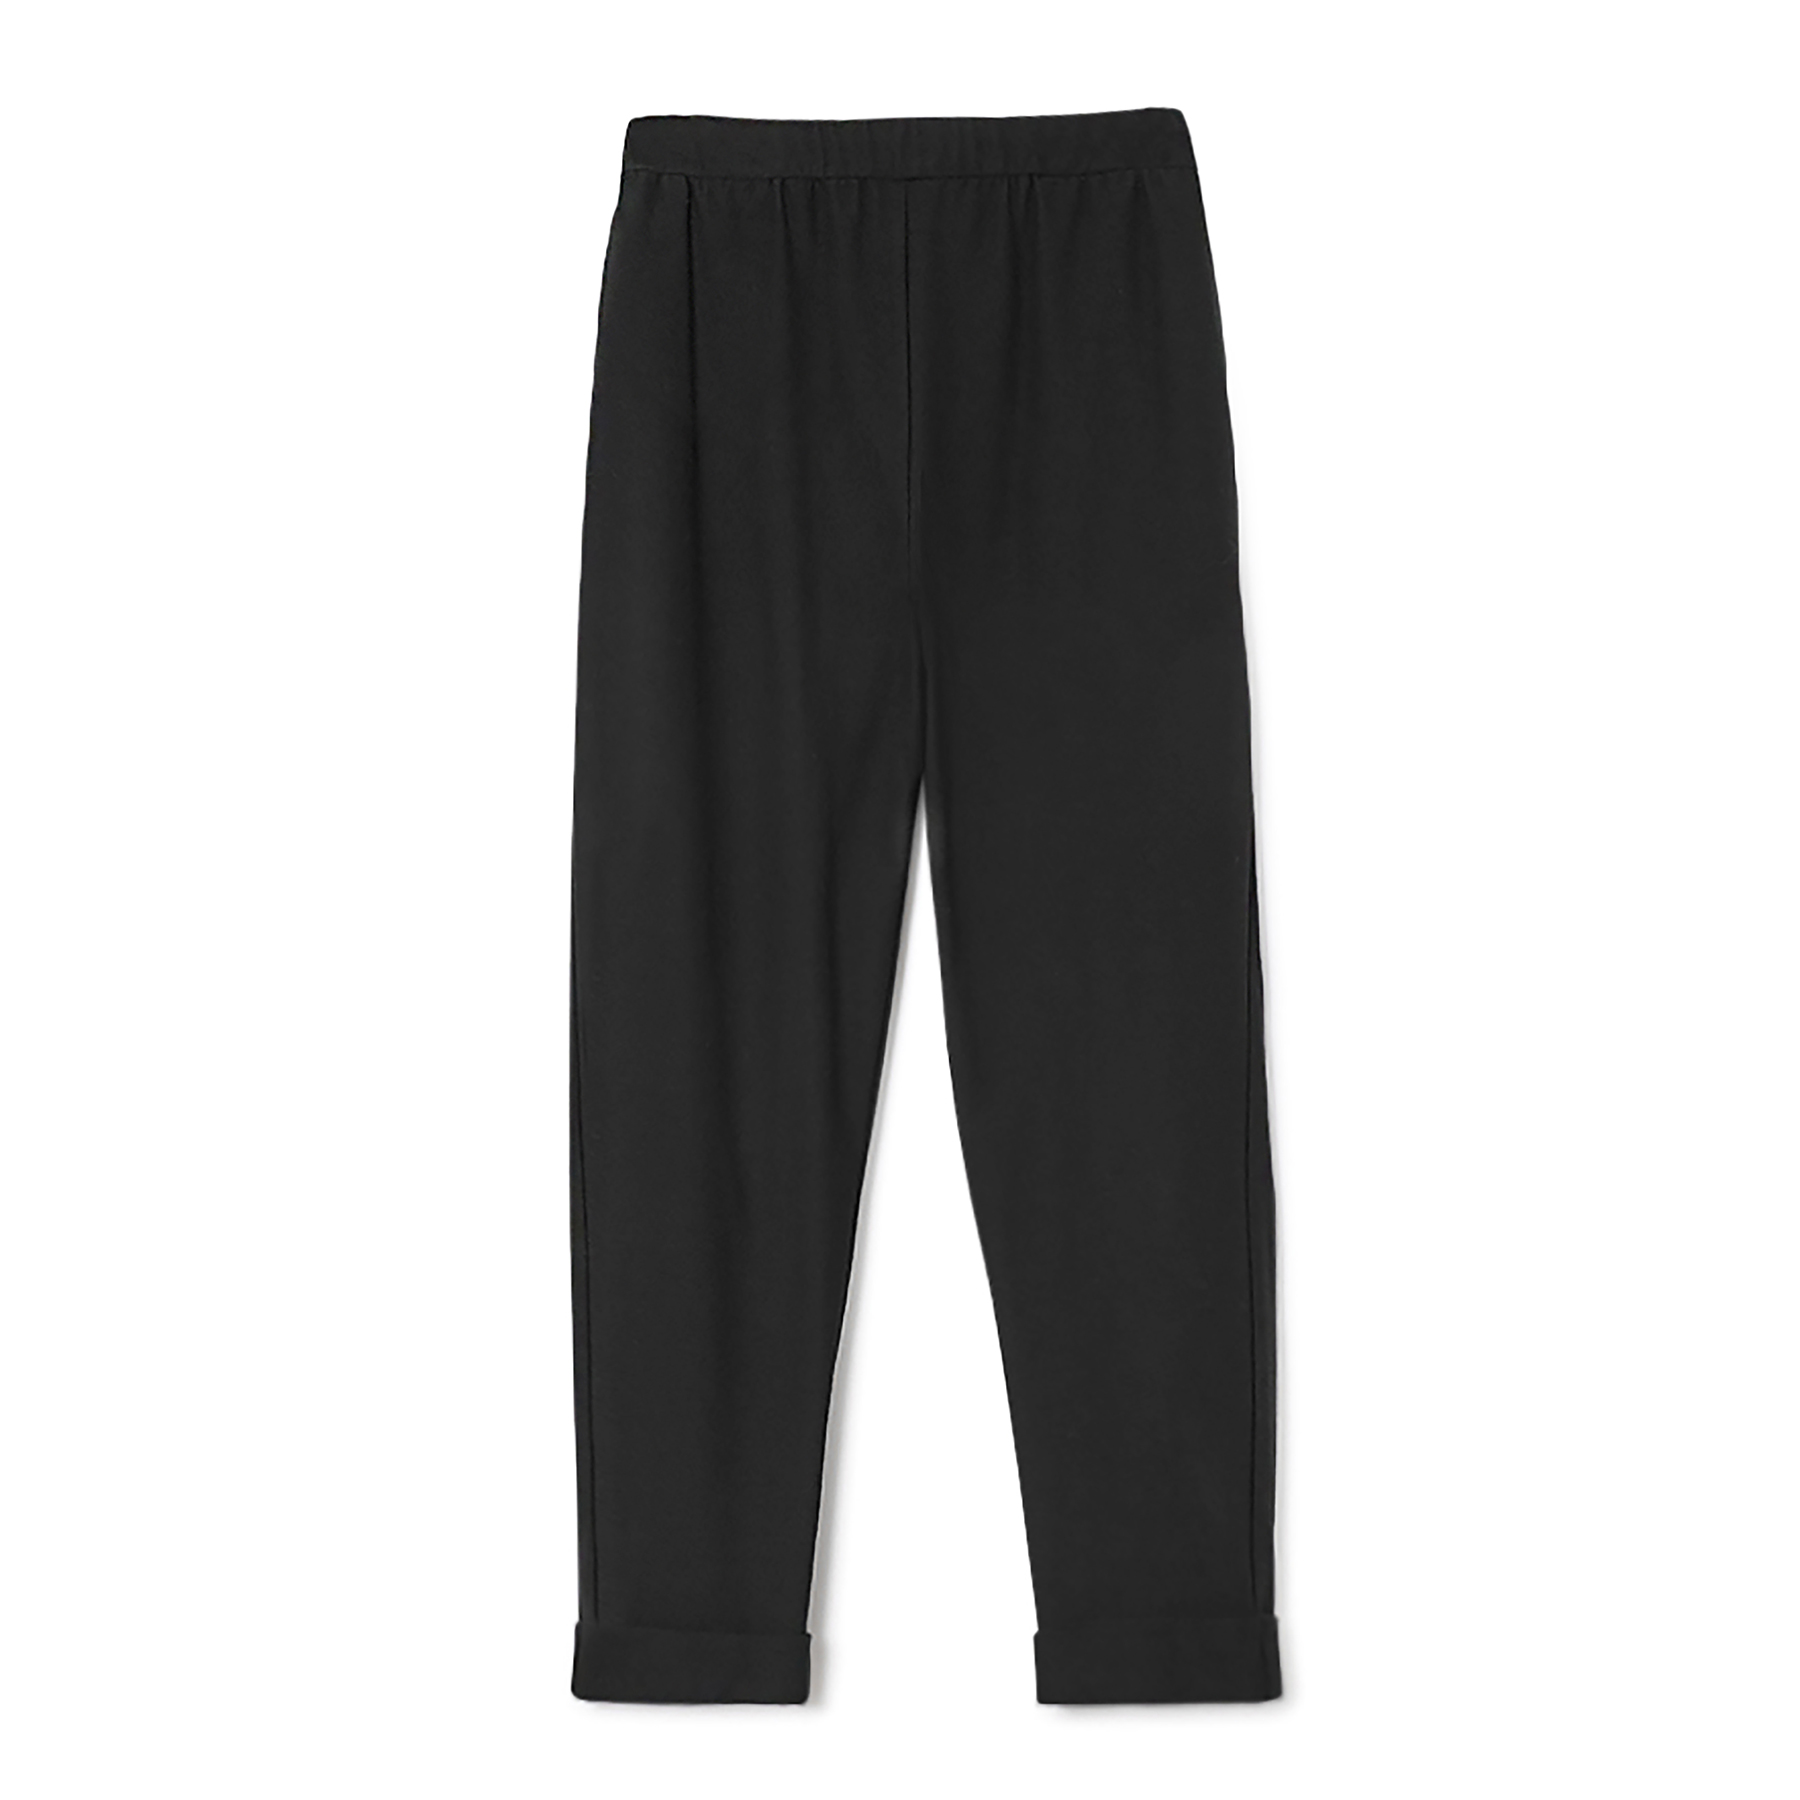 Best Sweatpants for Women: Eileen Fisher Washable Stretch Crepe Slouchy Ankle Pant